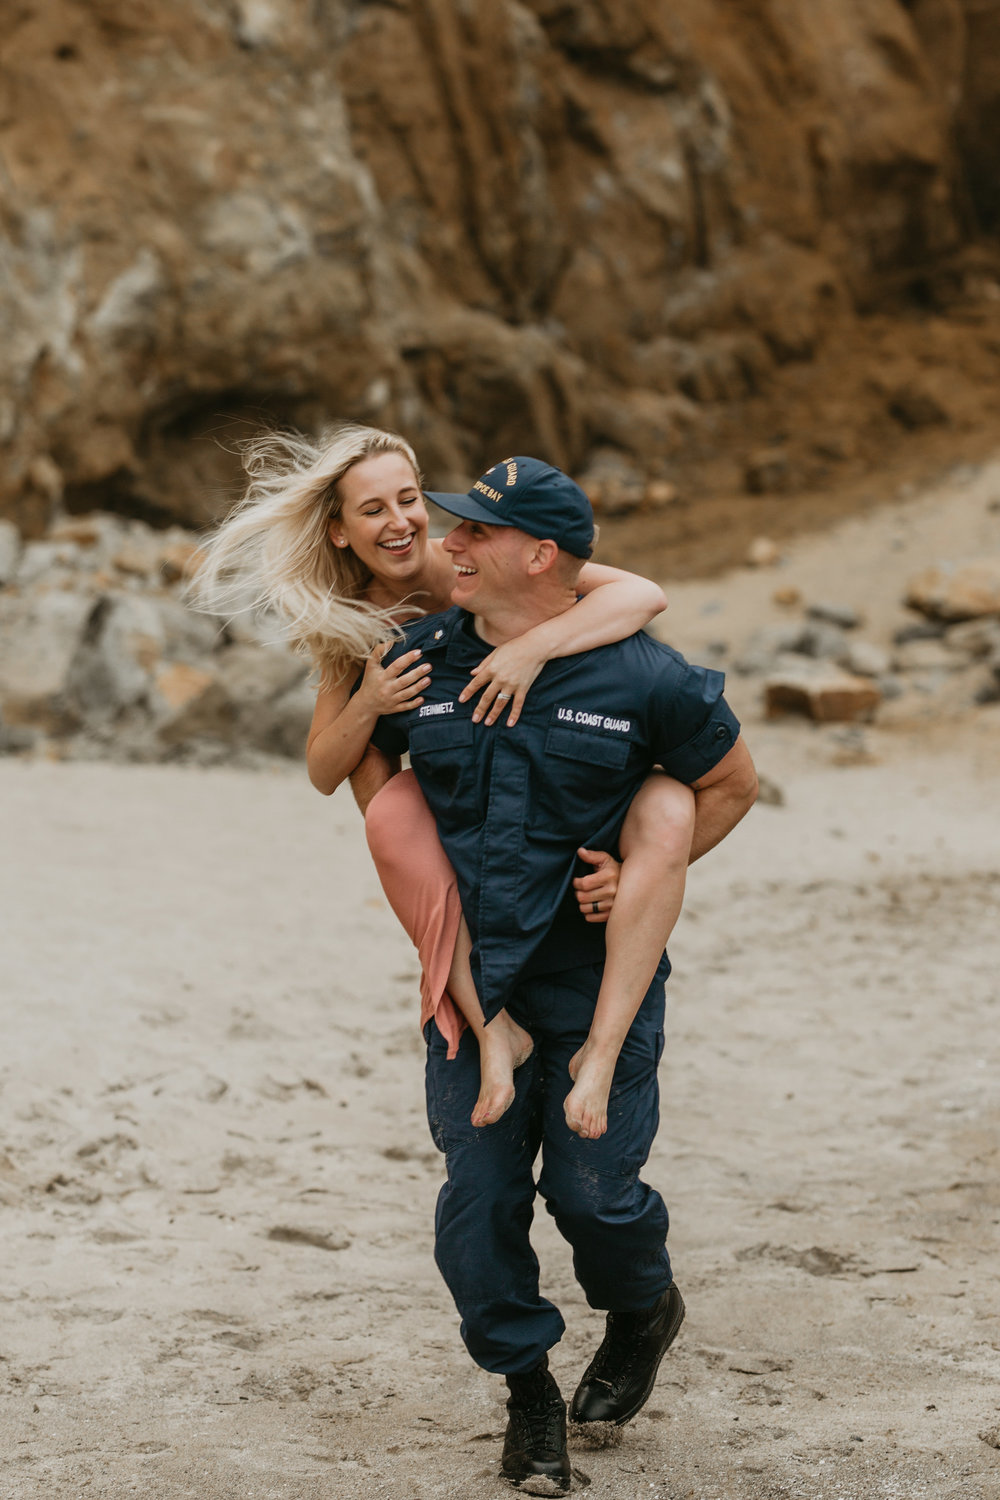 Nicole-daacke-photography-cape-kiwanda-foggy-adventure-session-engagement-session-anniversary-photos-oregon-coast-pacific-city-oregon-elopement-photographer-8.jpg